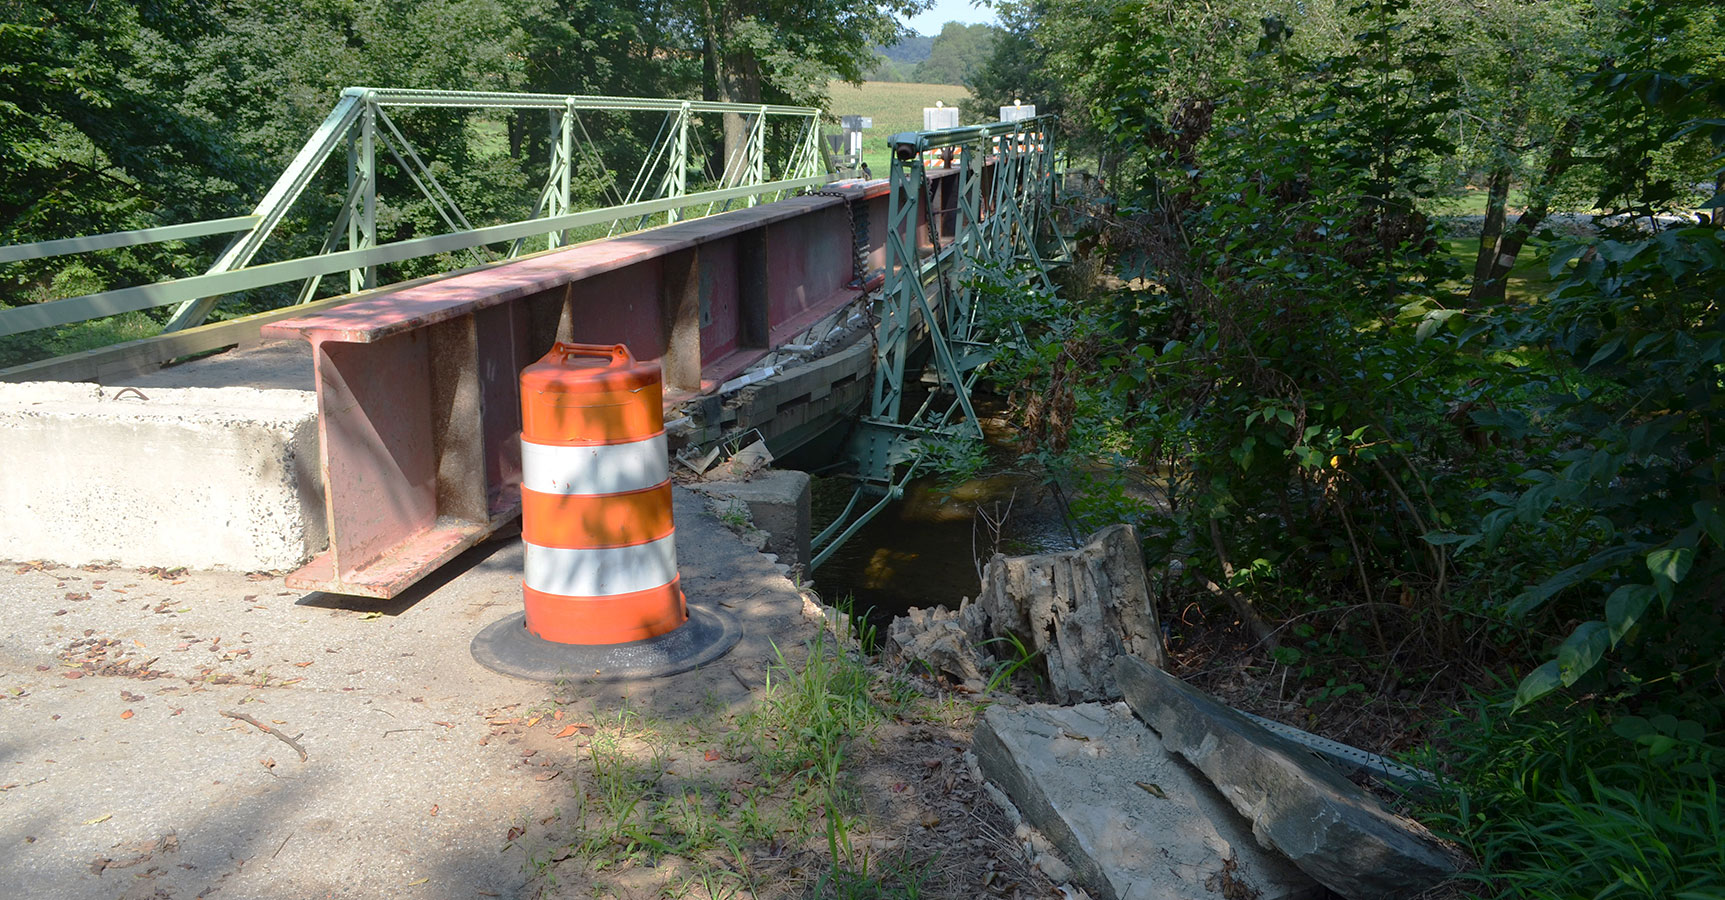 Bridge Management Damage Assessment and Repair Design